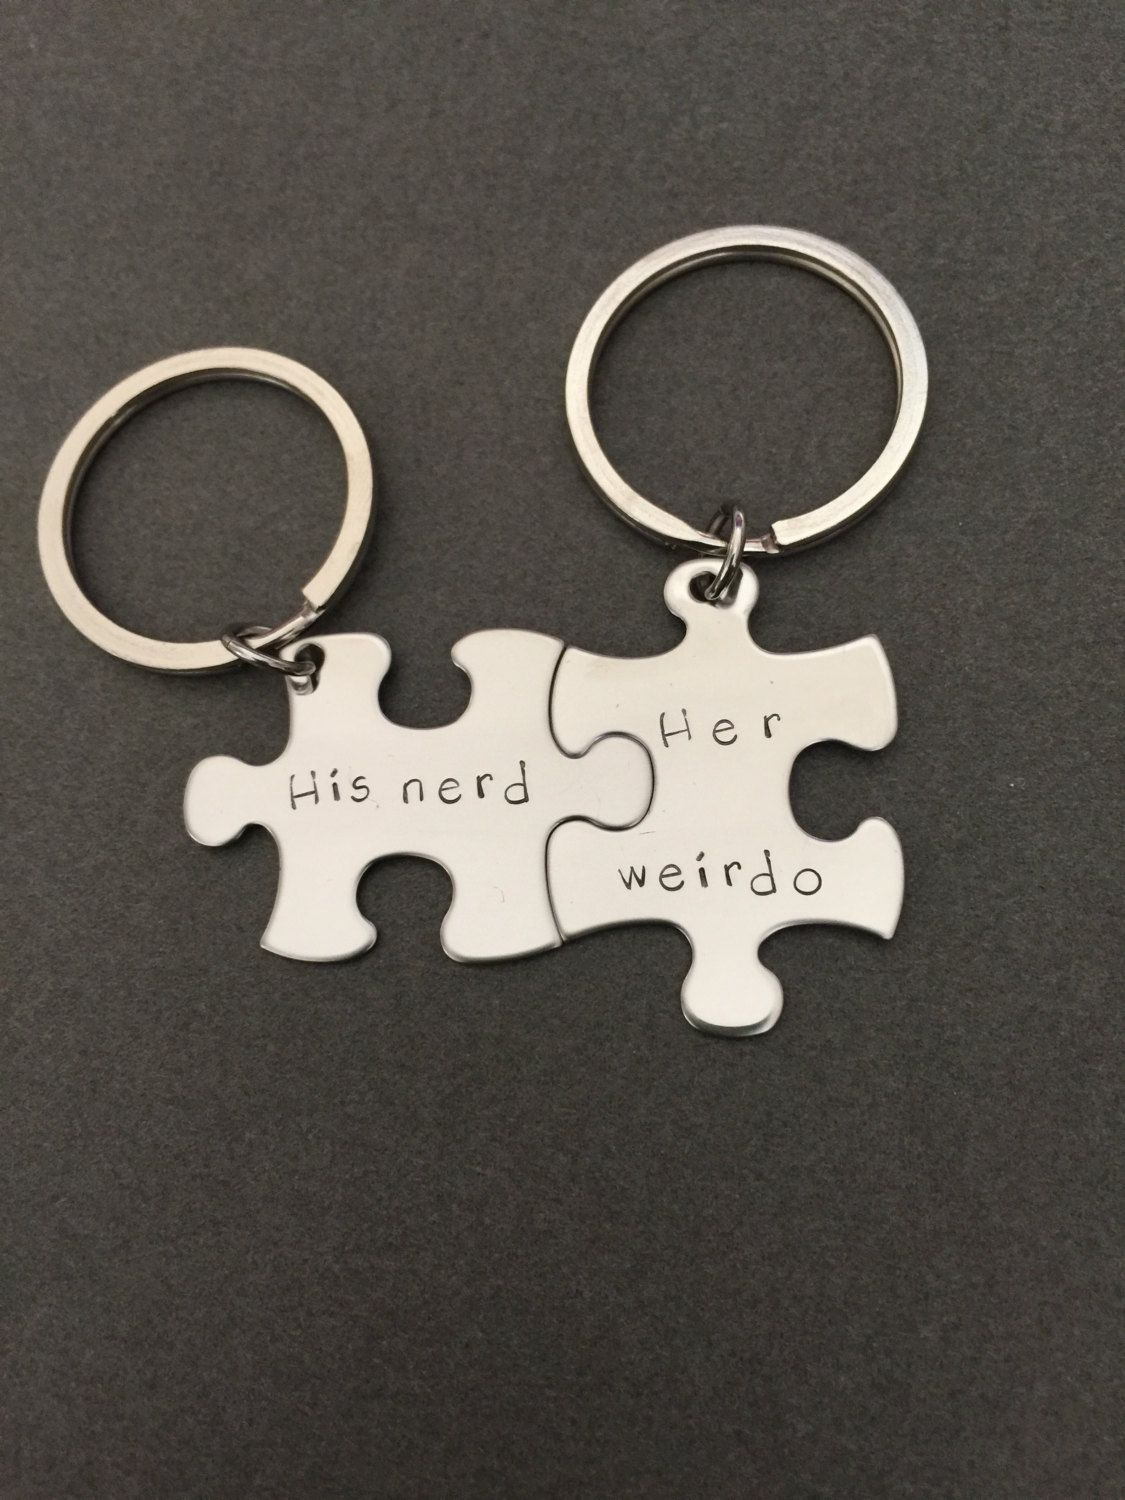 Items similar to His Nerd Her Weirdo keychains, Geek Gift, Geek Boyfriend Girlfriend Gift, personalized puzzle keychains, couples keychains, couples gift, on Etsy